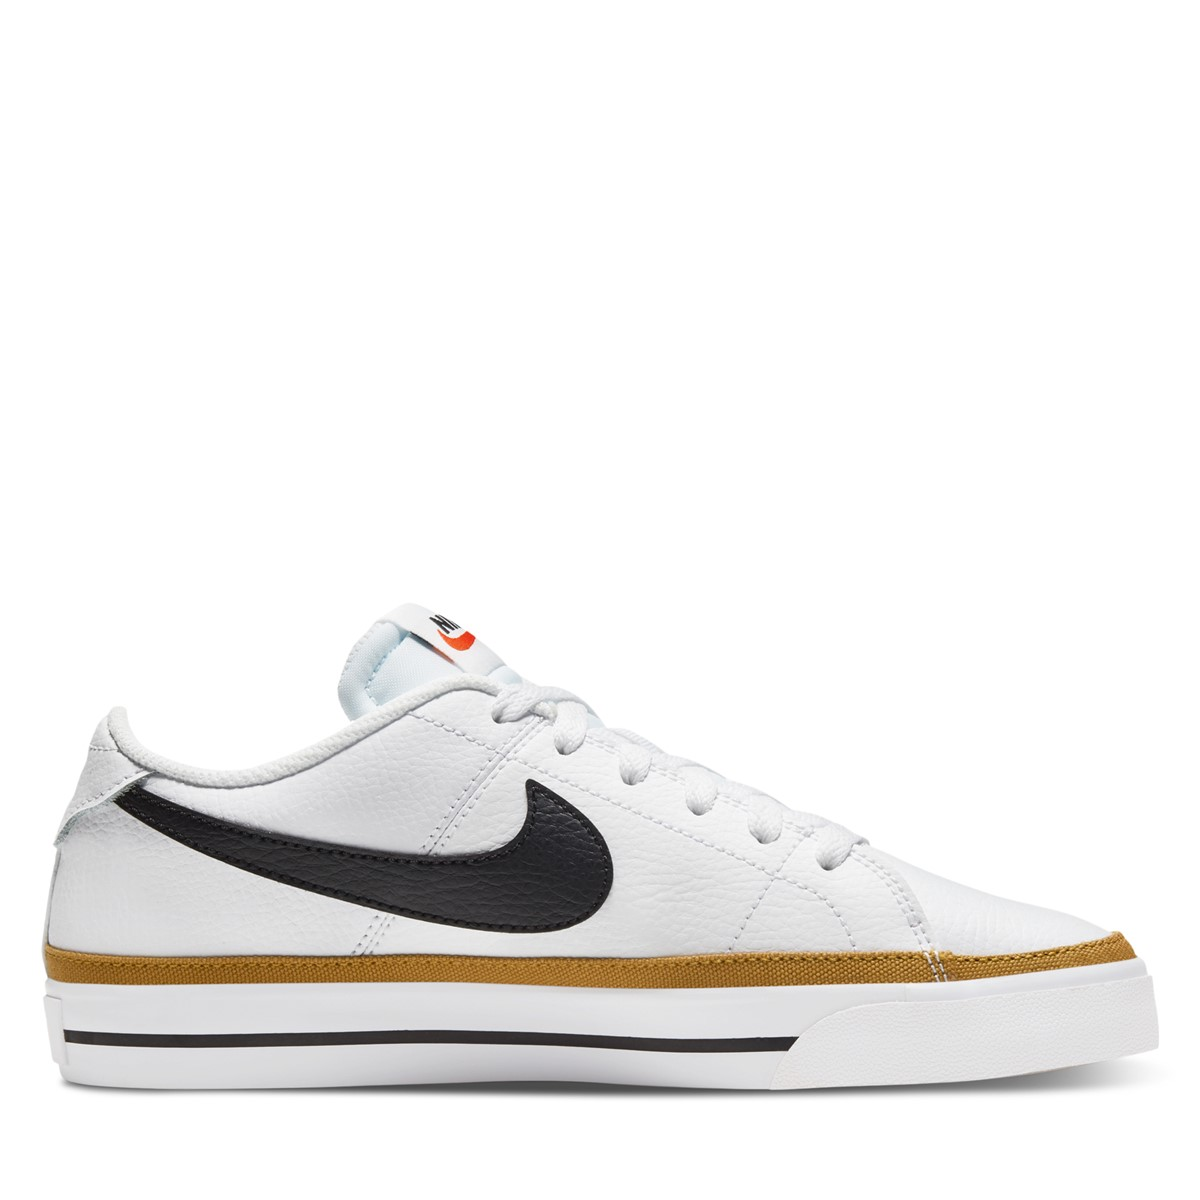 Women's Court Legacy Sneakers in White/Black/Gold